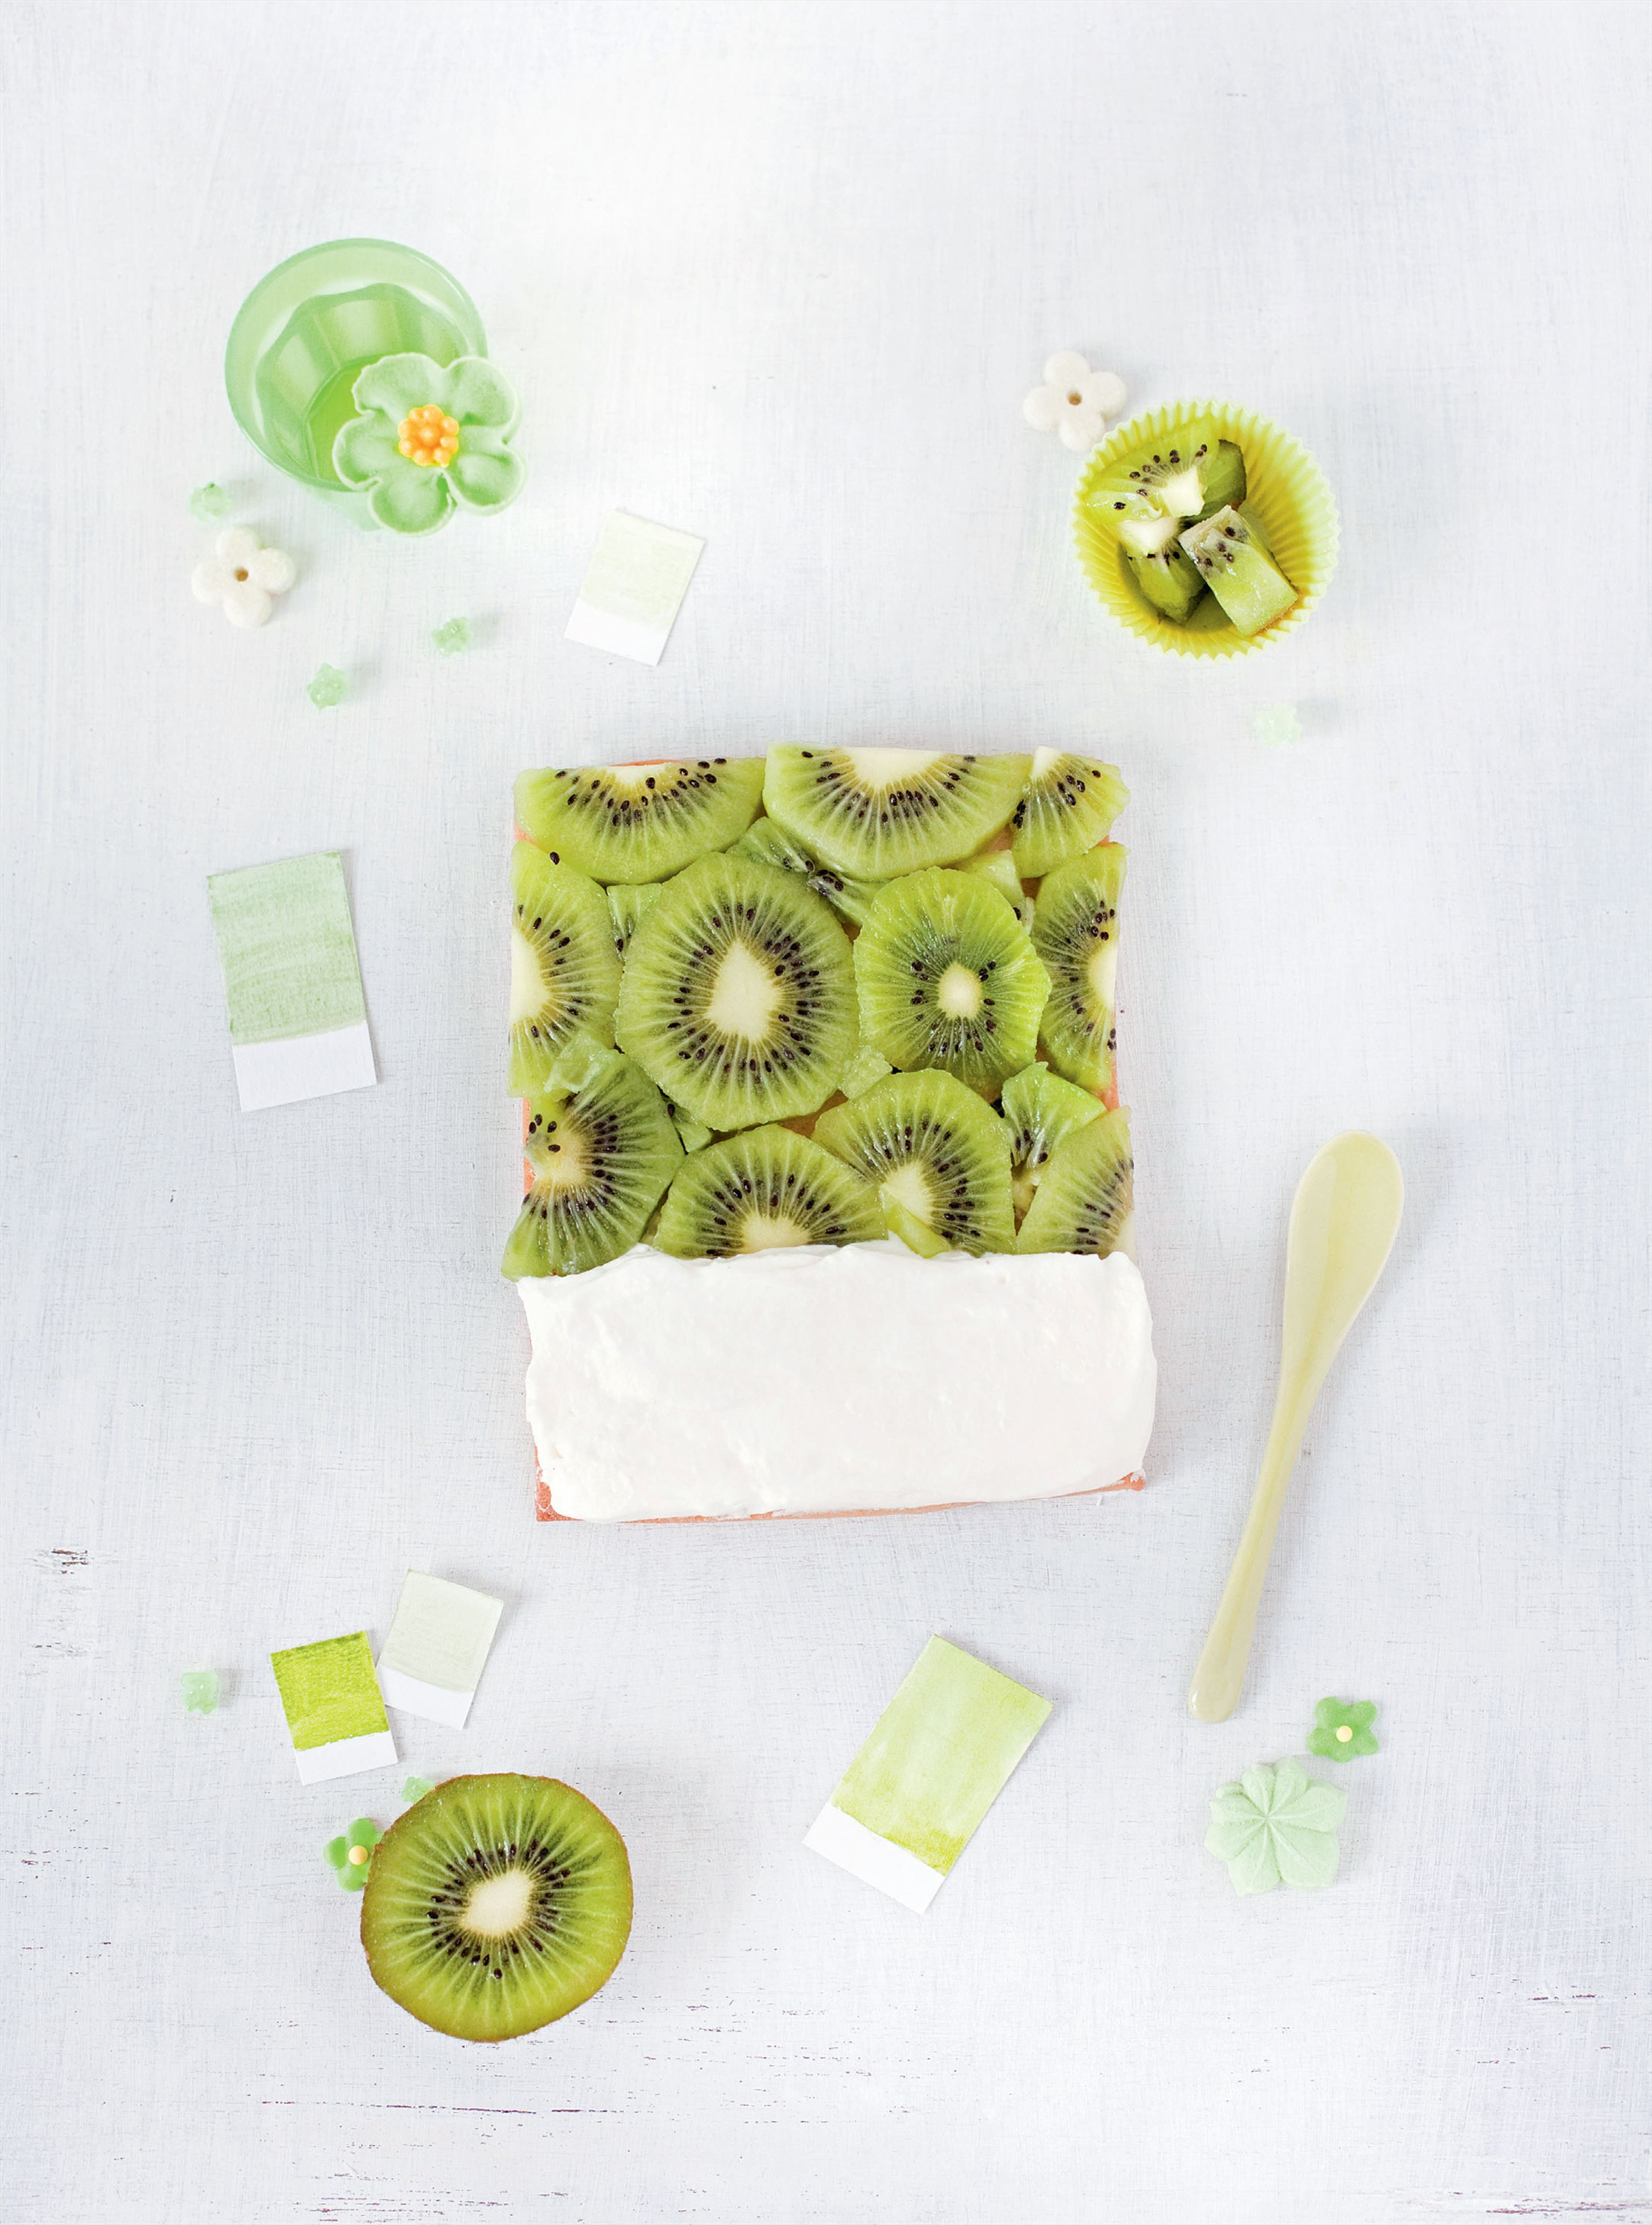 Kiwi fruit - chantilly